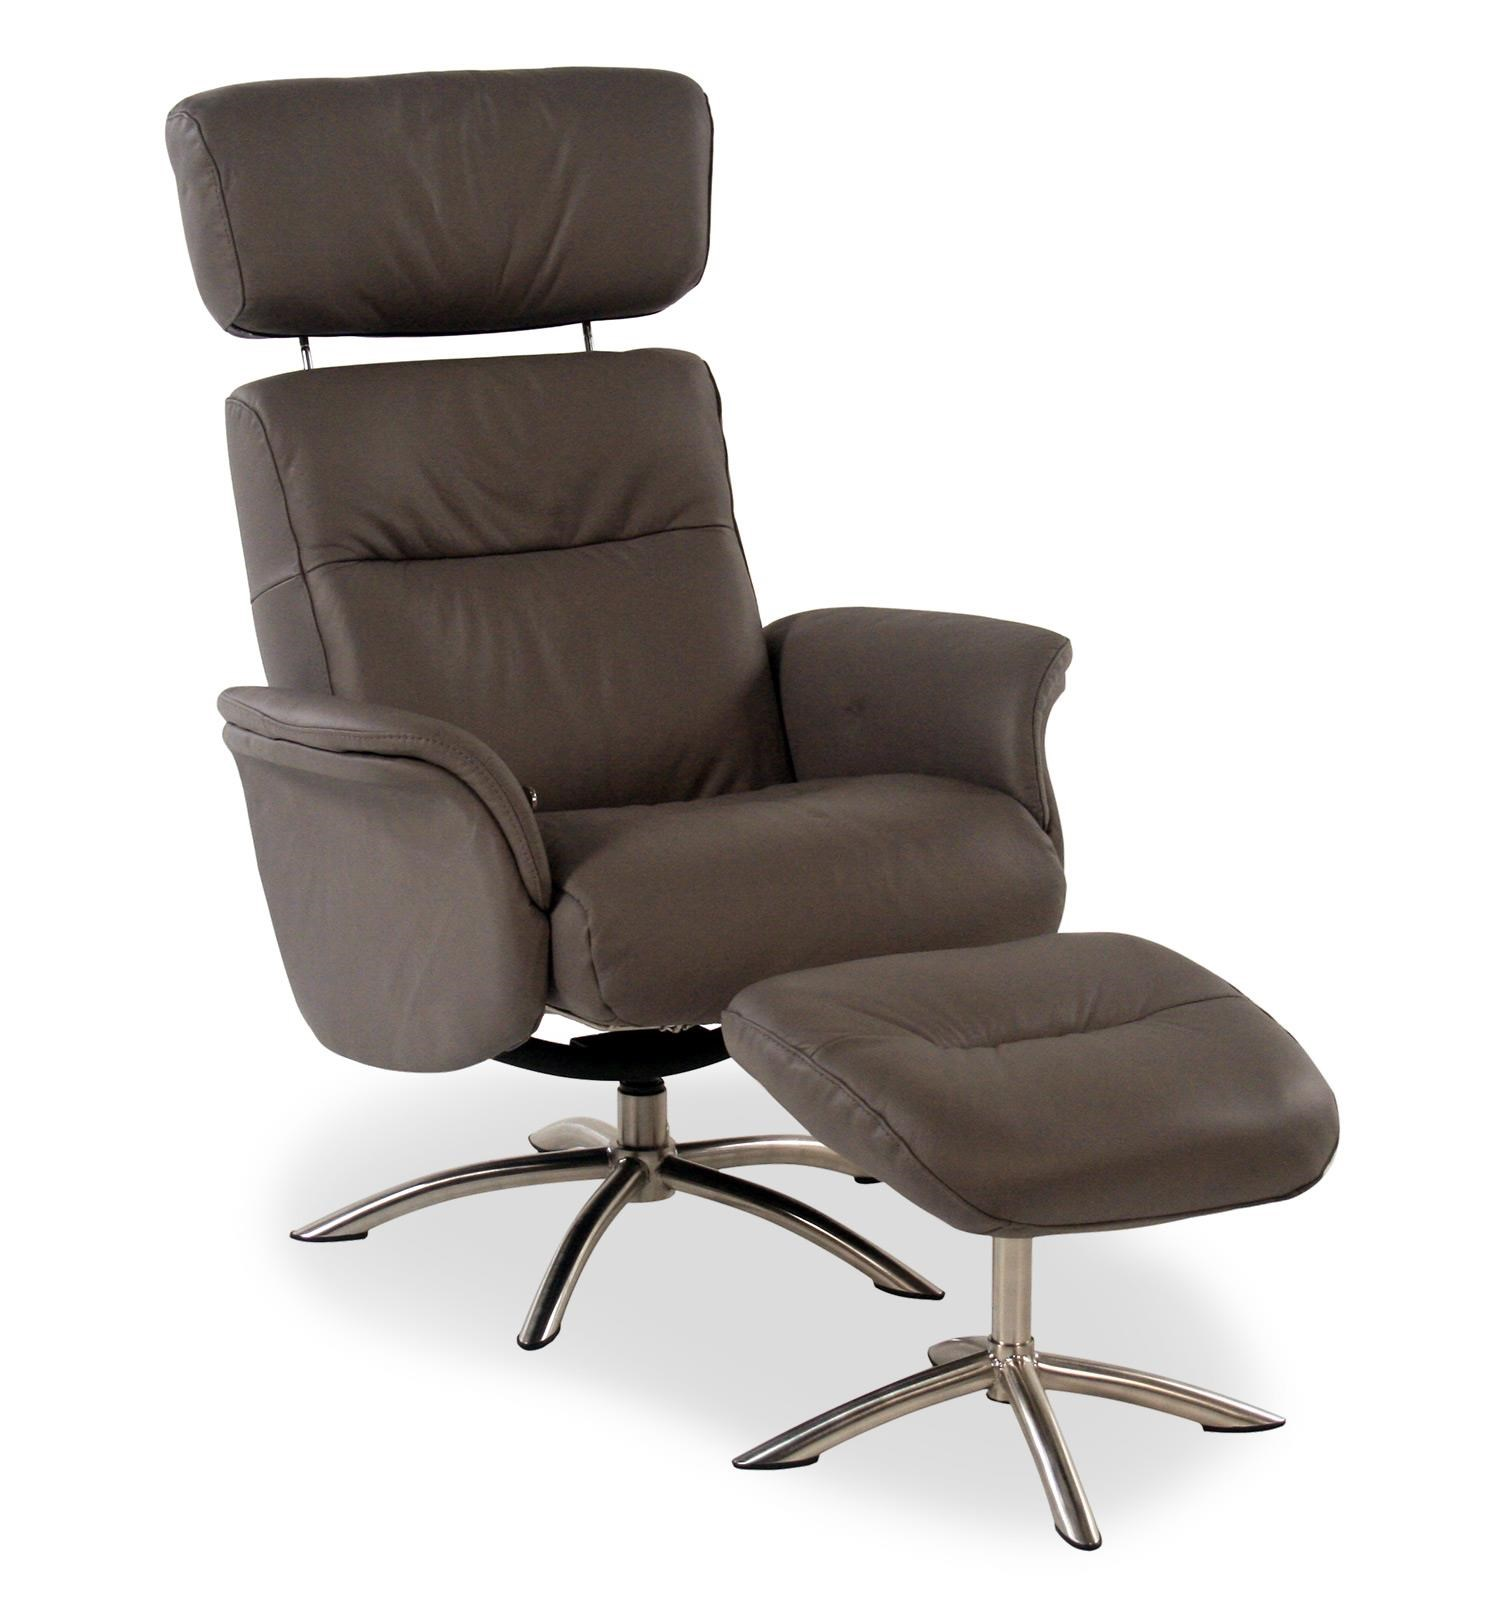 recliner vs chair with ottoman kitchen table caster chairs quantum contemporary leather reclining w swivel base and